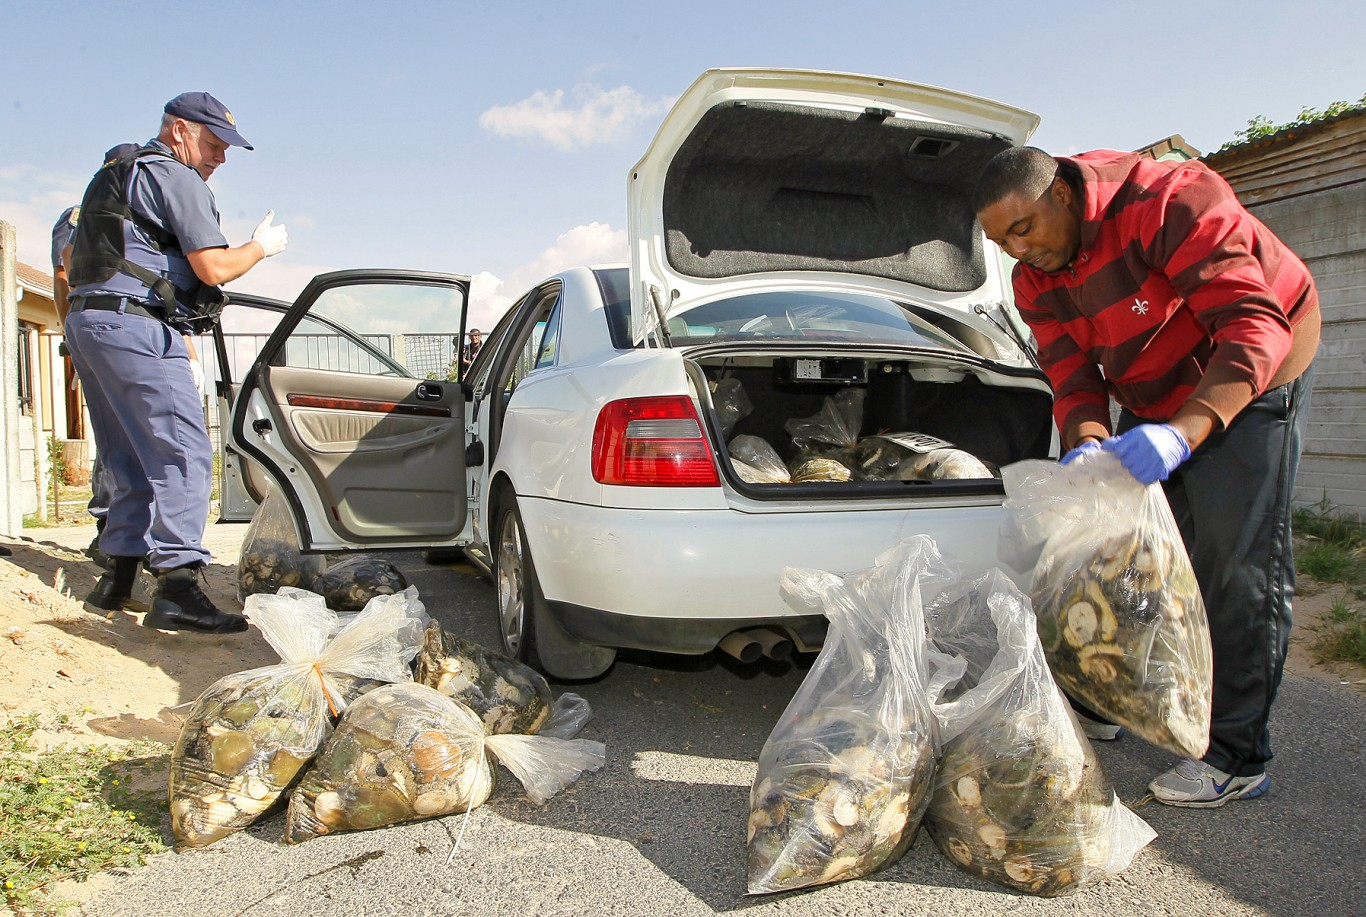 Illegal abalone activity uncovered after high speed police chase